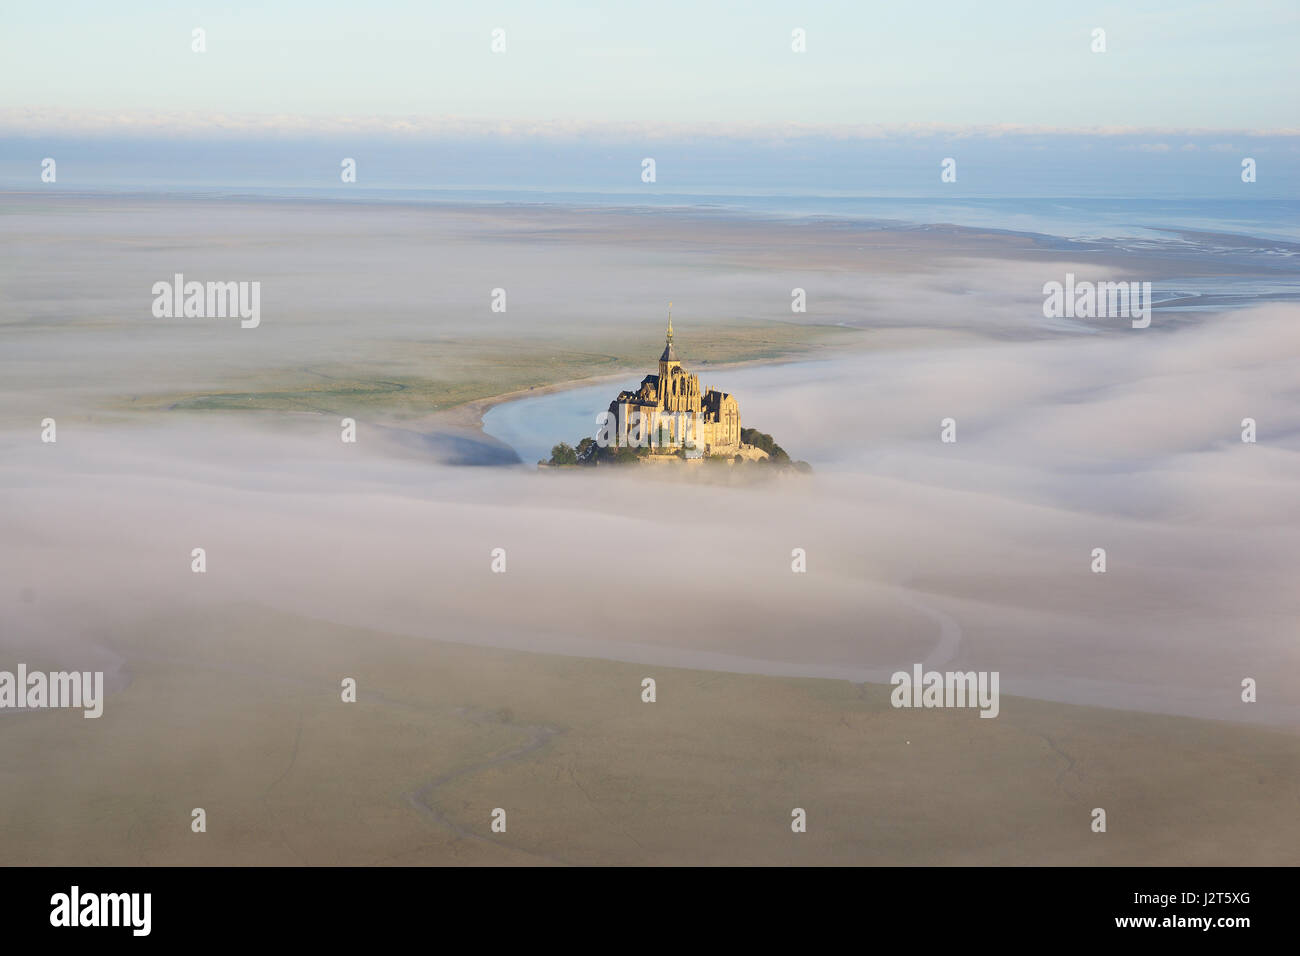 ABBEY ON A ROCKY ISLAND IN AN INTERTIDAL ZONE (aerial view). Mont Saint-Michel, Normandy, France. - Stock Image